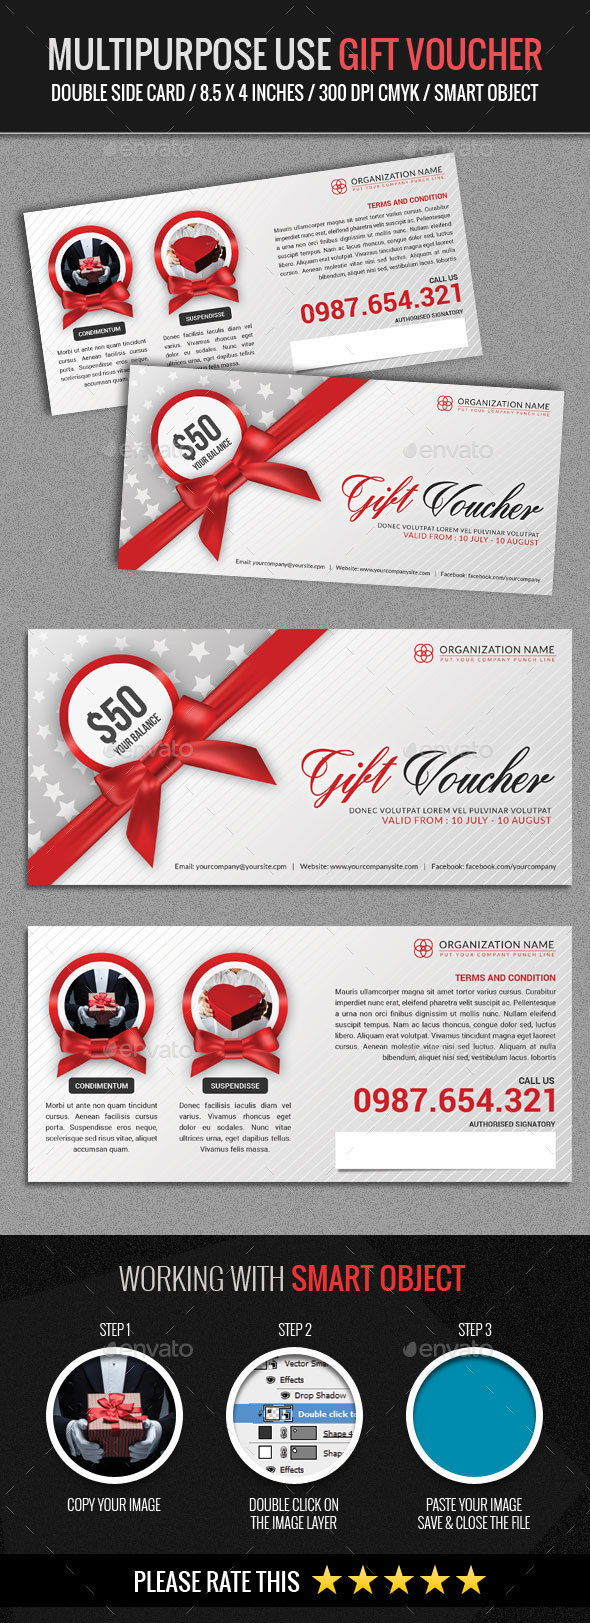 Multipurpose Use Gift Voucher Template - Loyalty Cards Cards & Invites